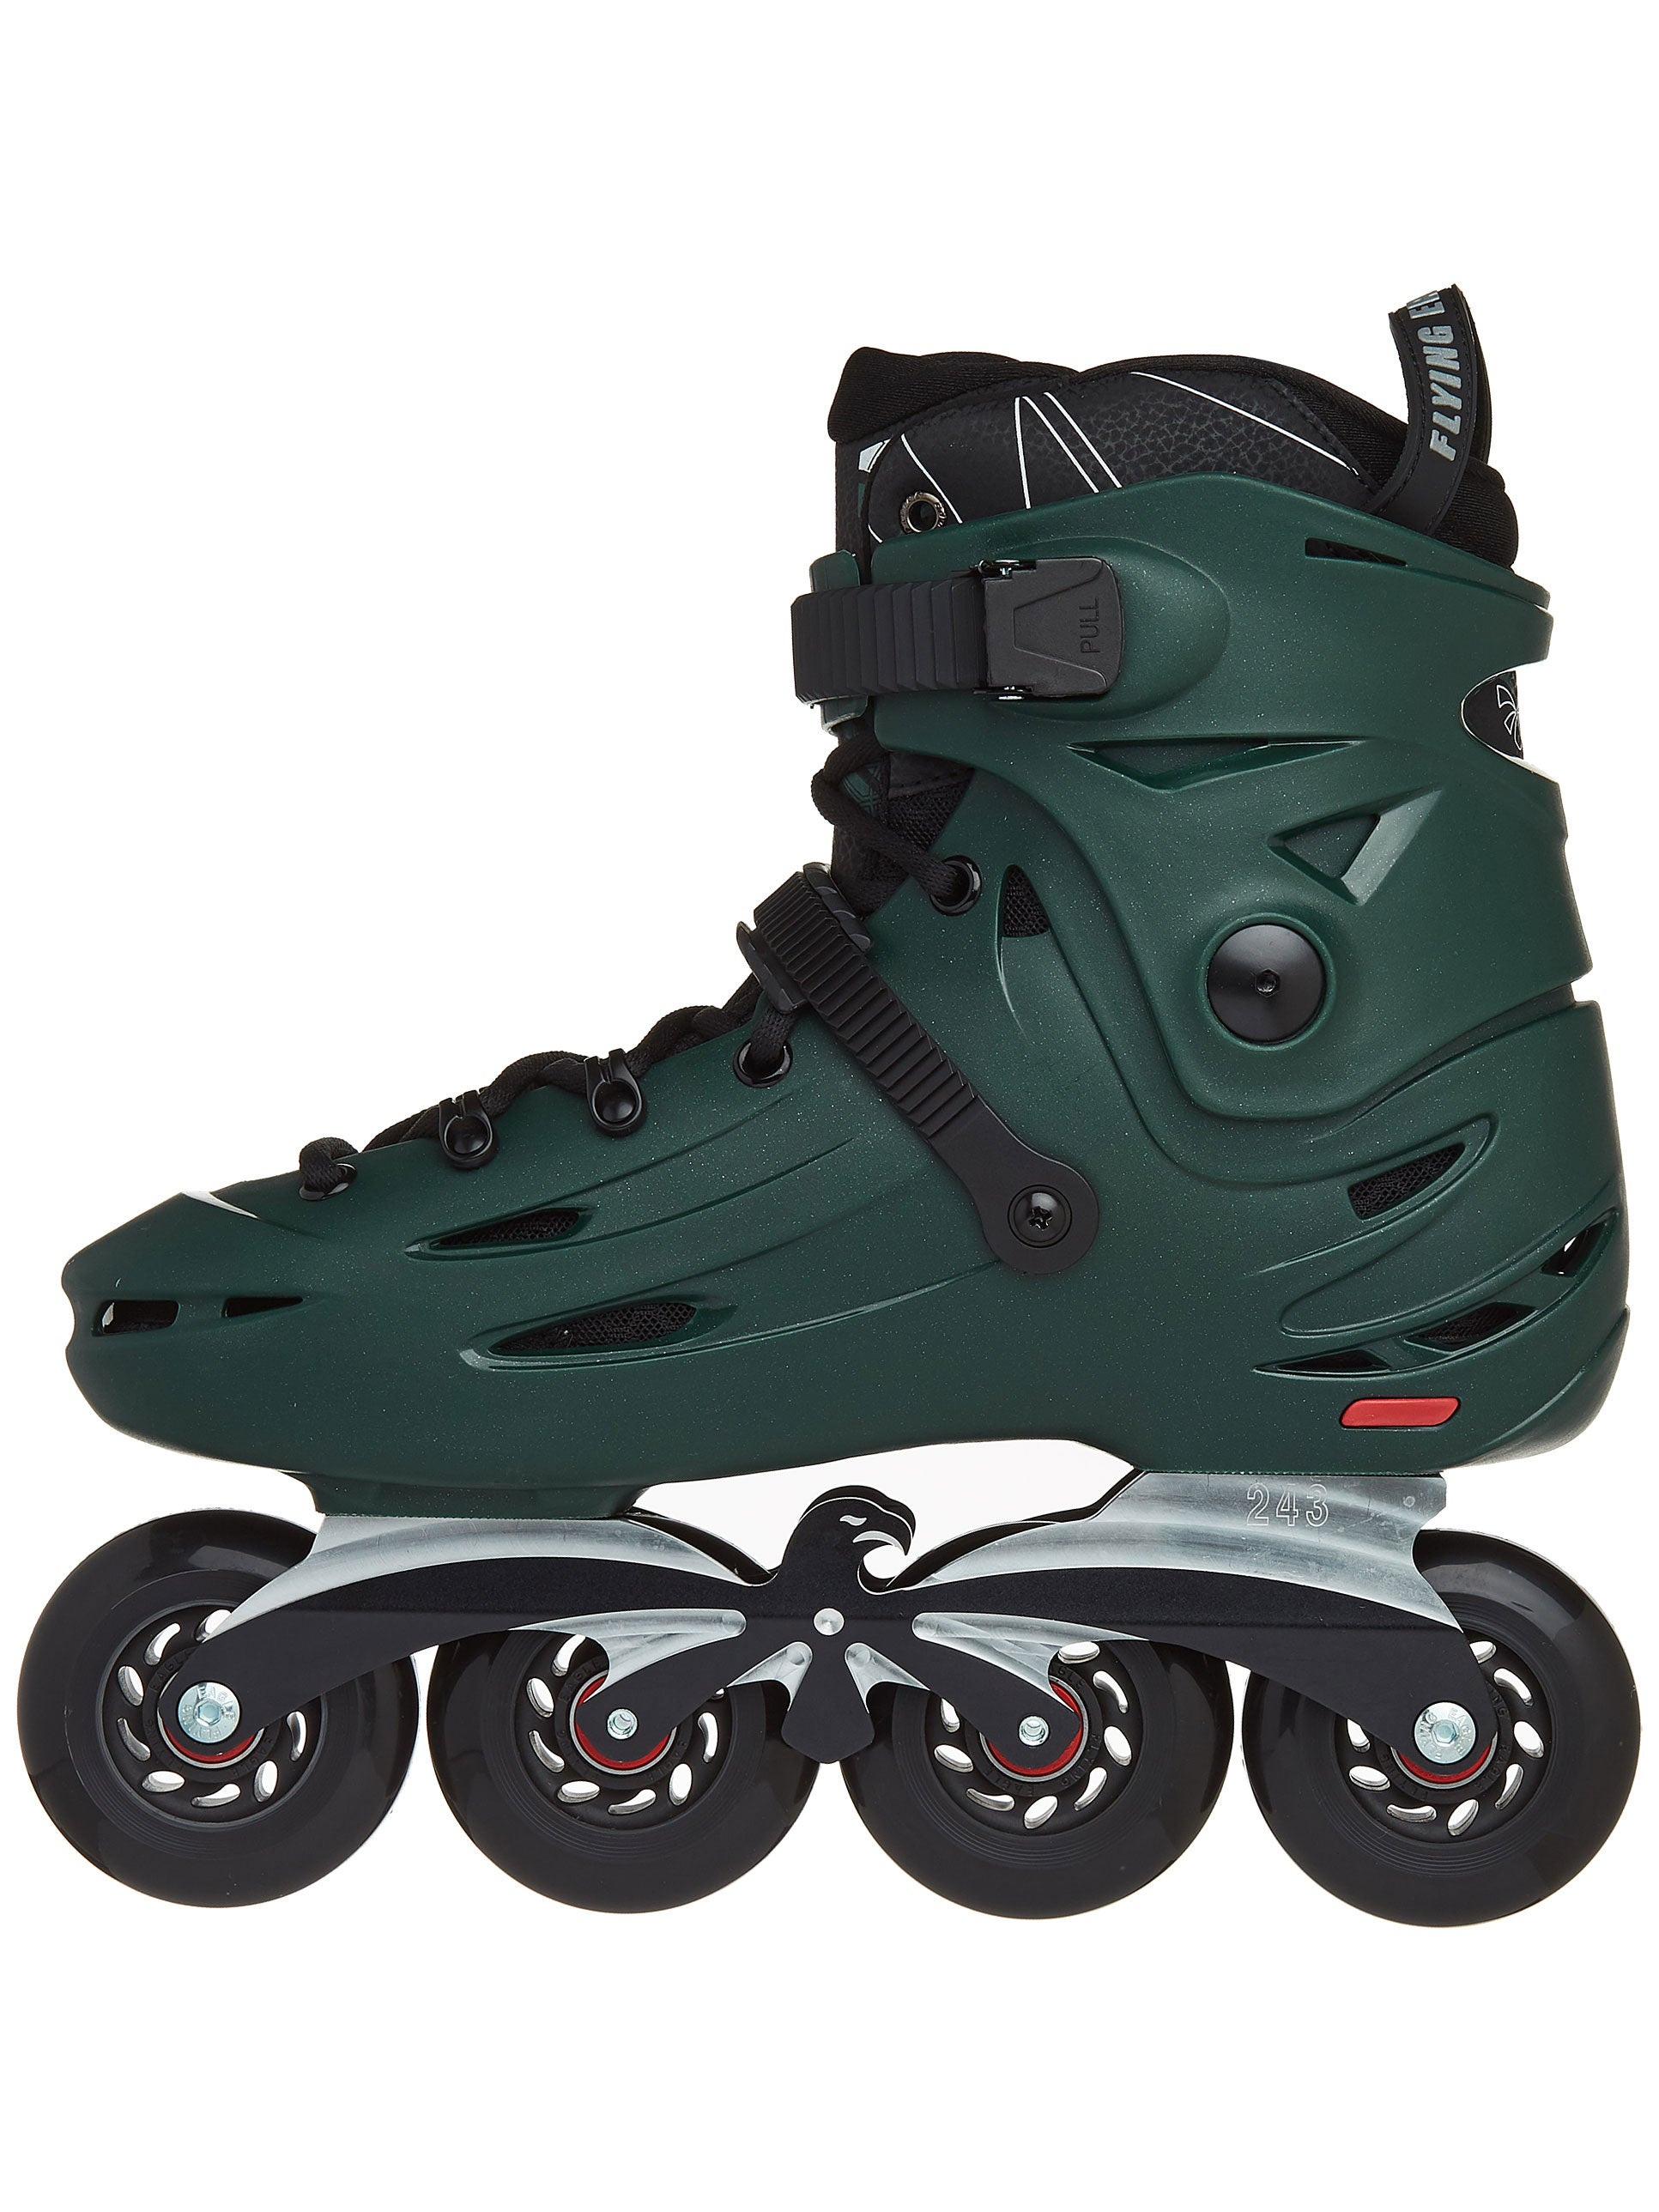 Inline-Skates Flying Eagle F6S Falcon Red Racing Inline Skates